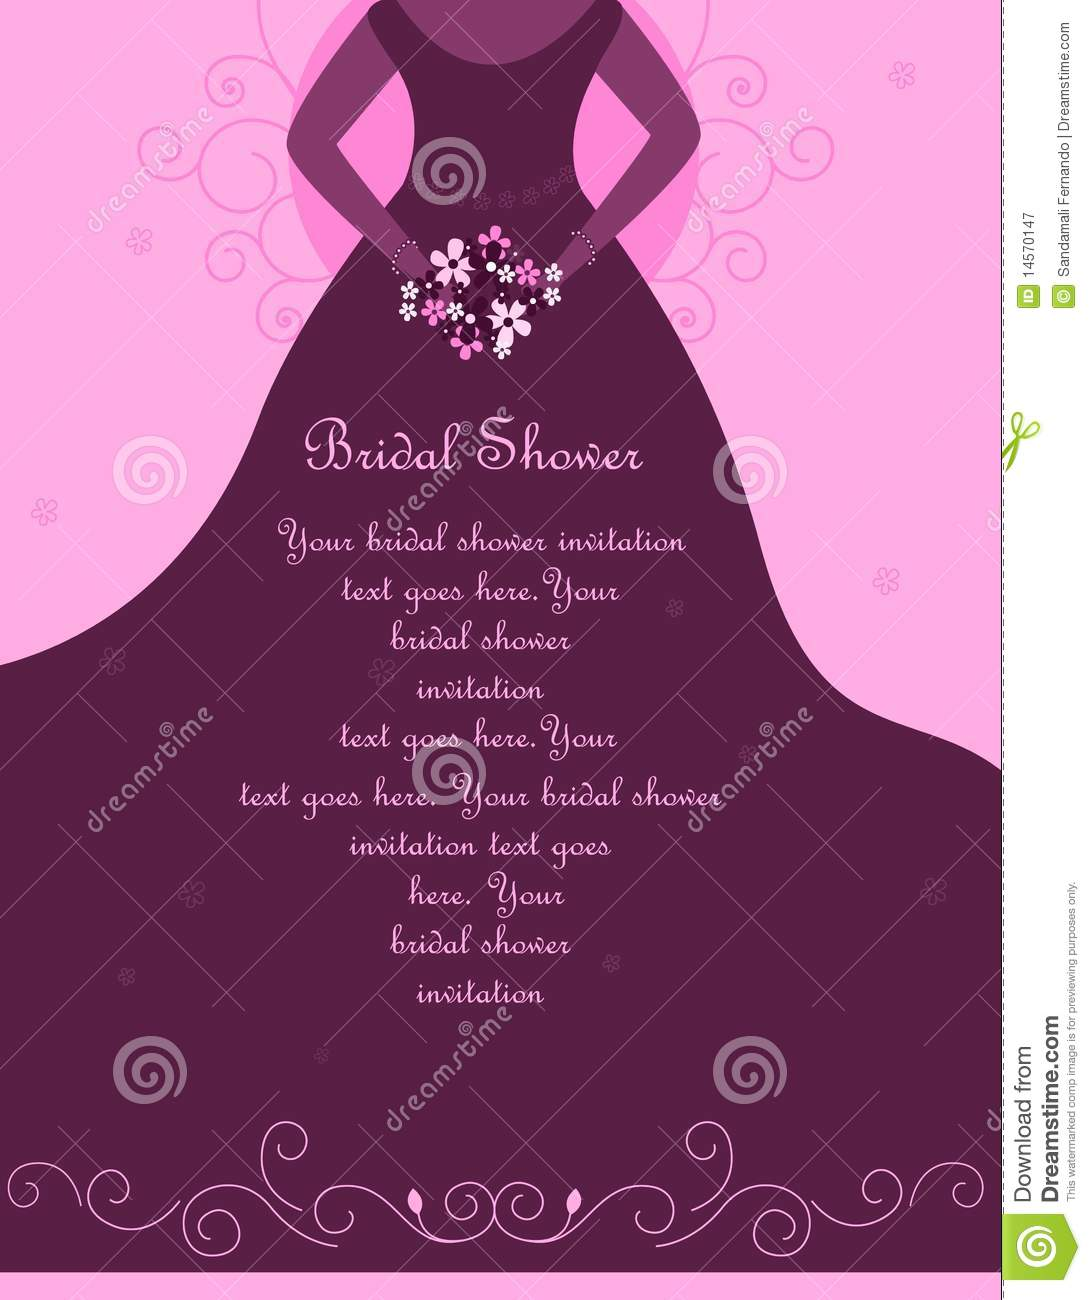 Bridal Shower / Wedding Invitation  Bridal Shower Invitation Templates Download